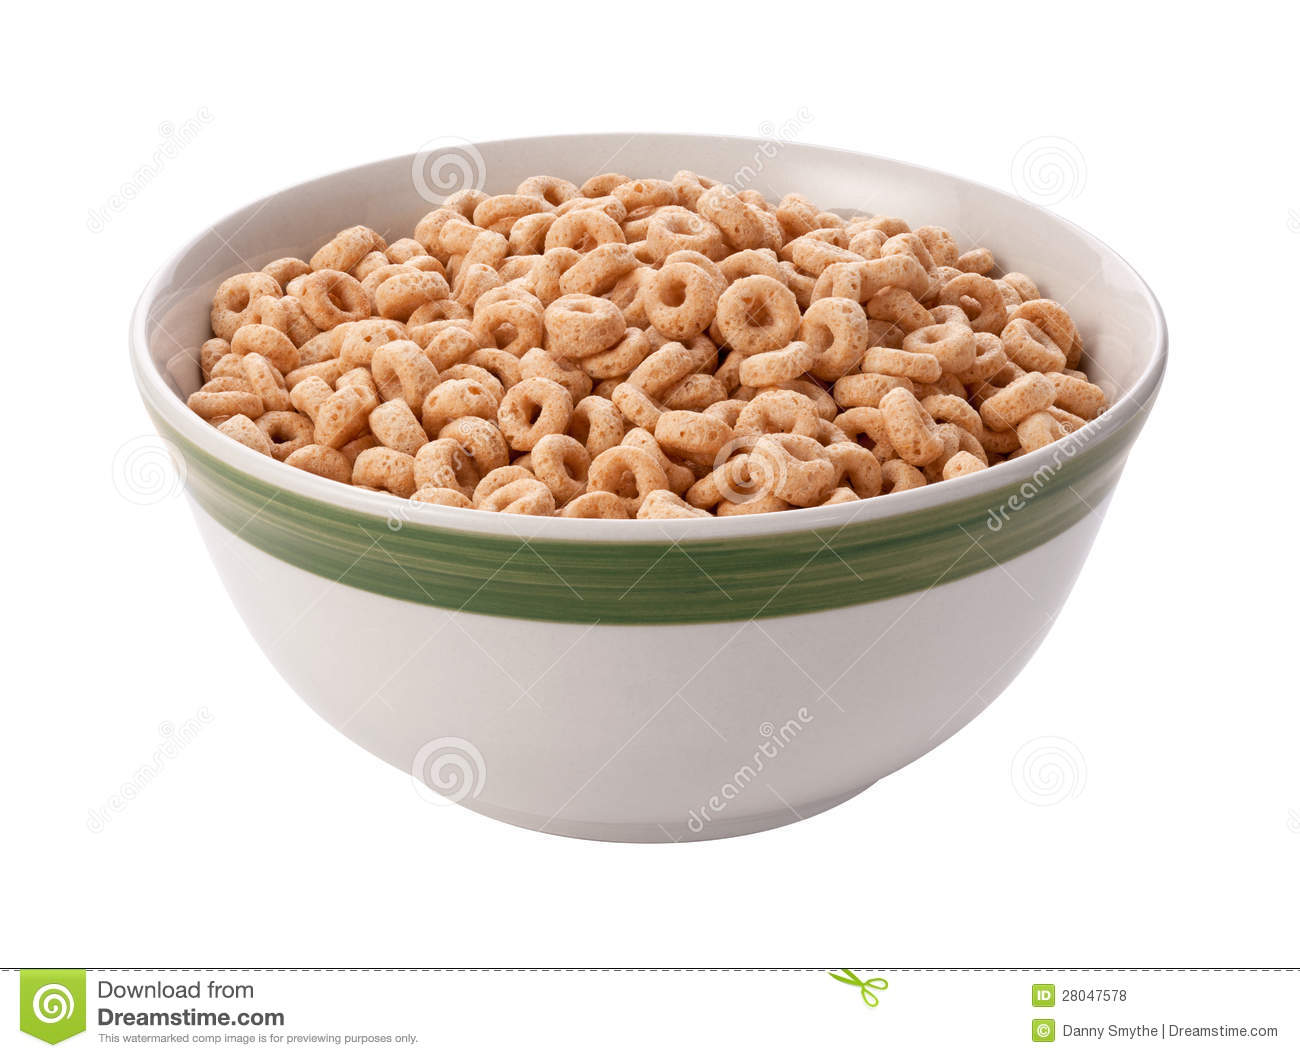 Cereal clipart transparent With Cereal Oat transparent Isolated